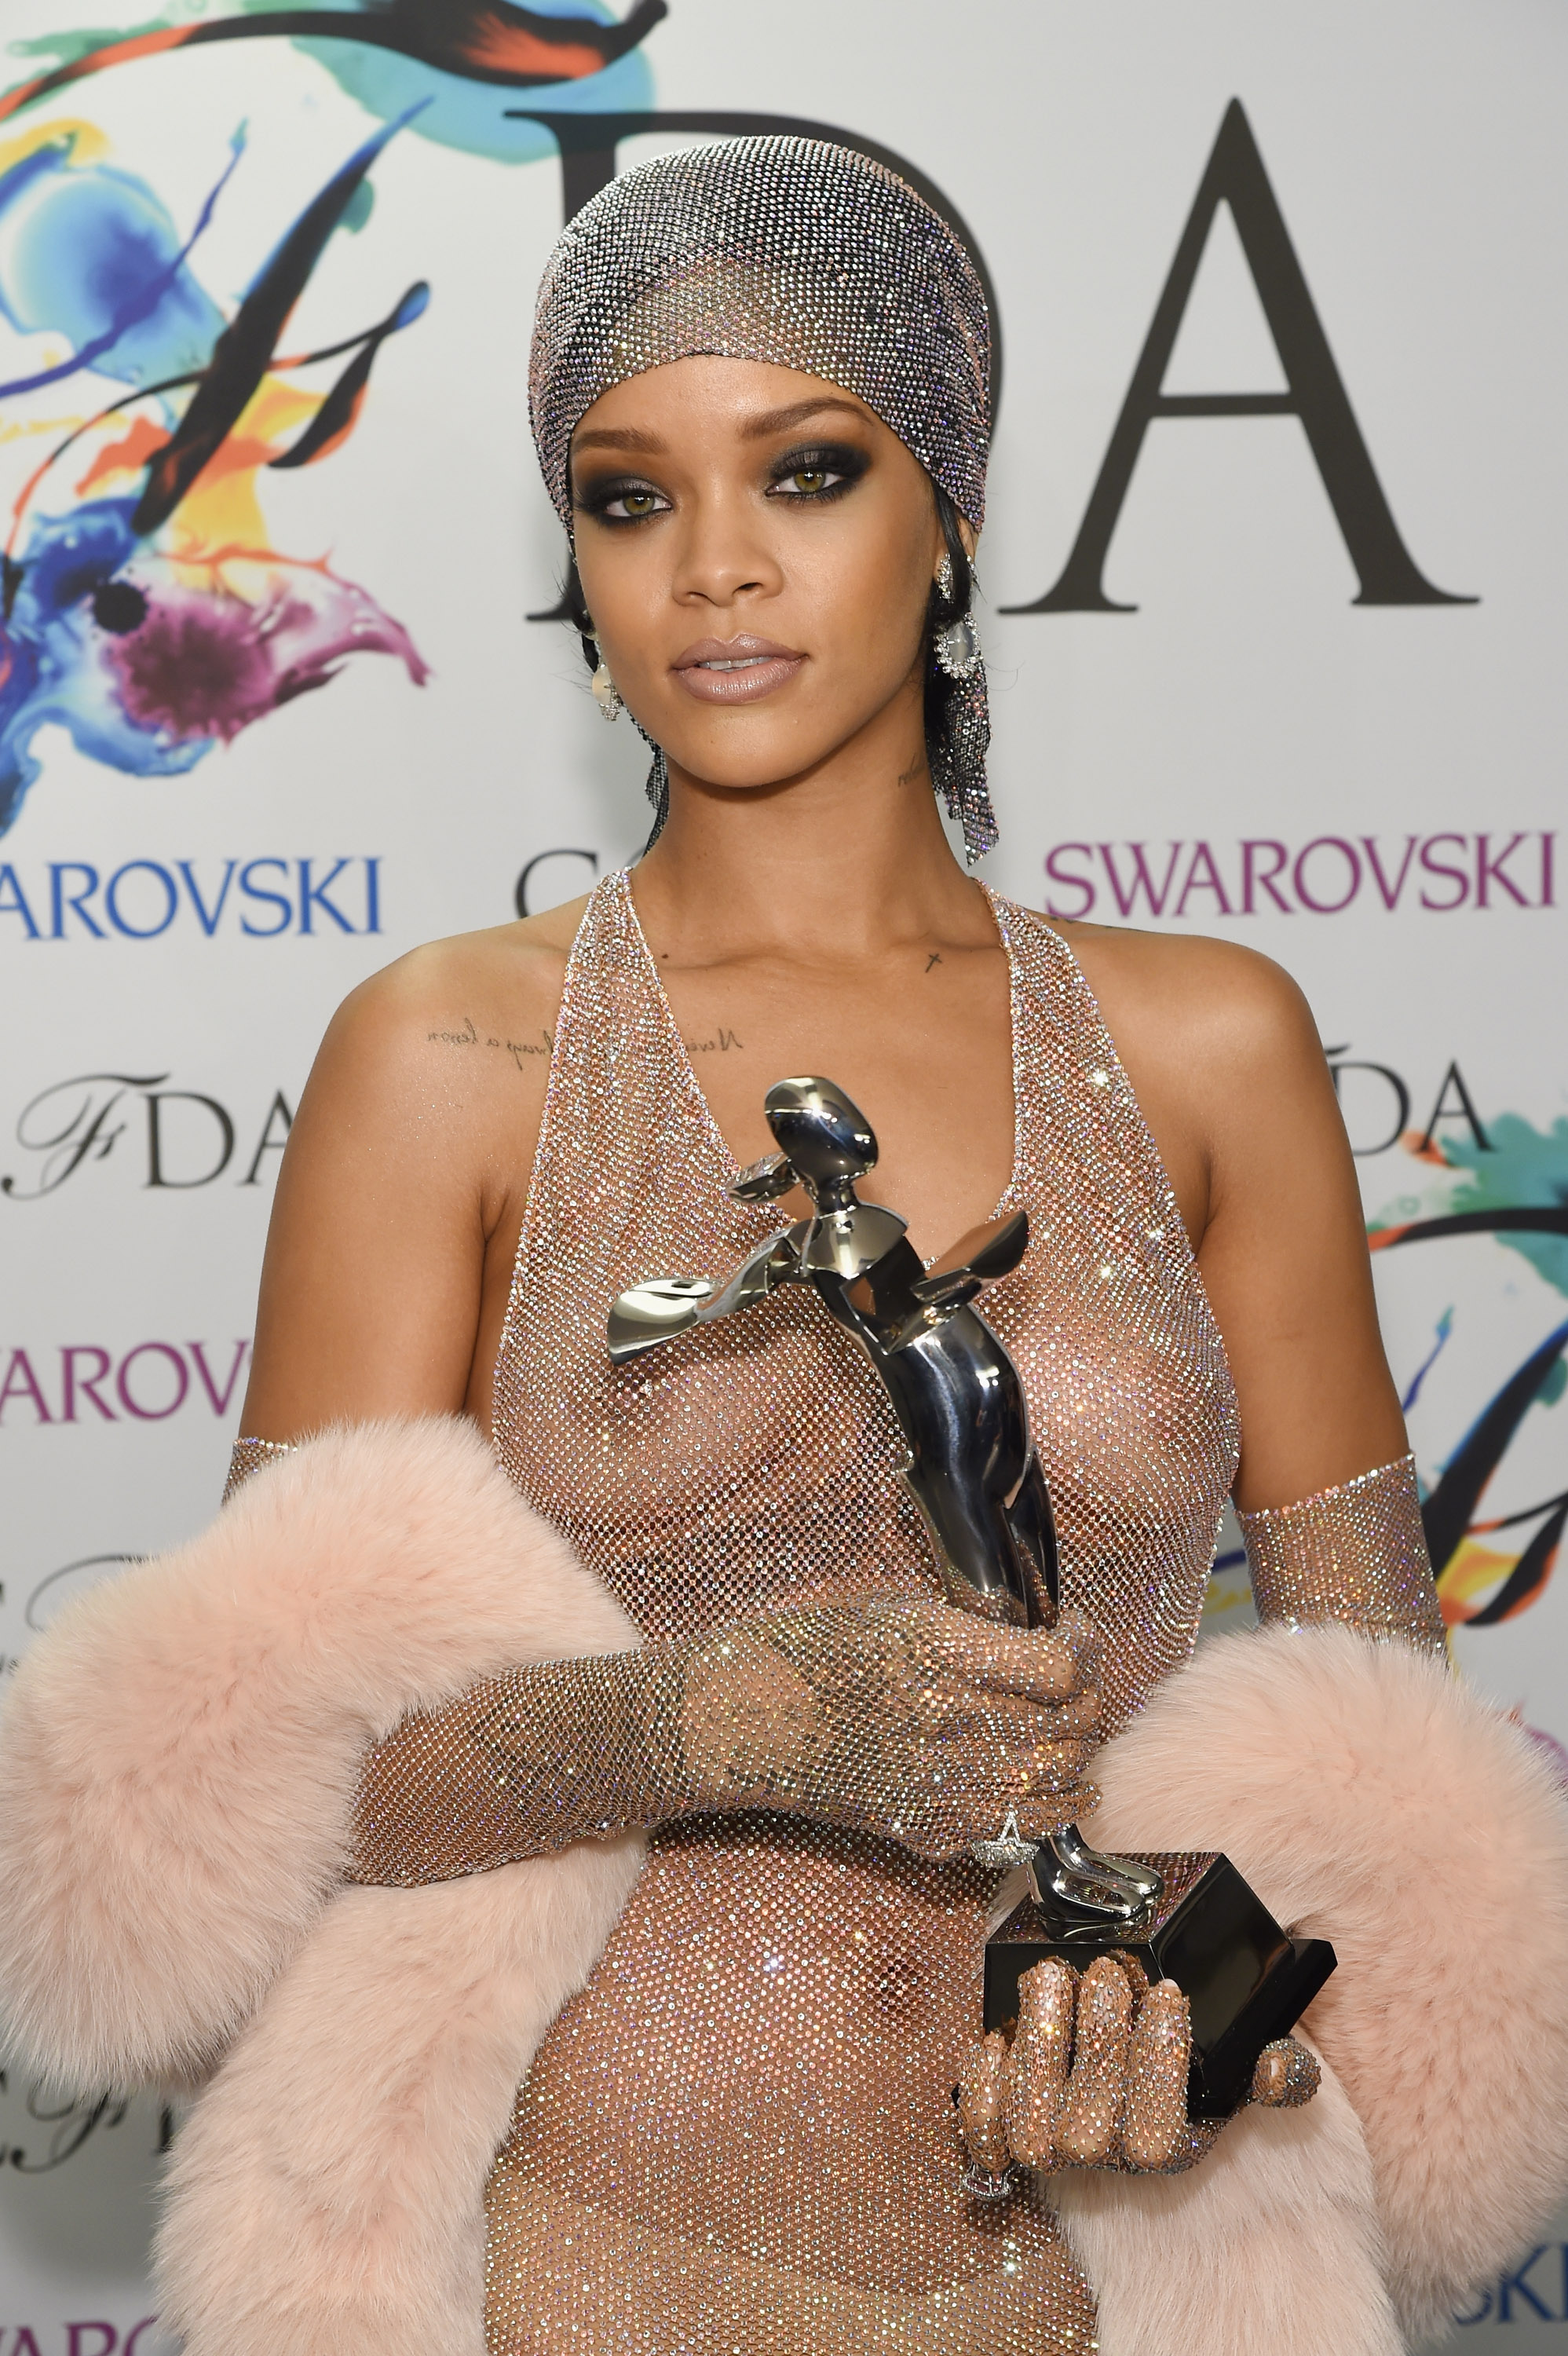 Nude Photo Hackers Target Rihanna In Latest Batch Of Leaks -2233